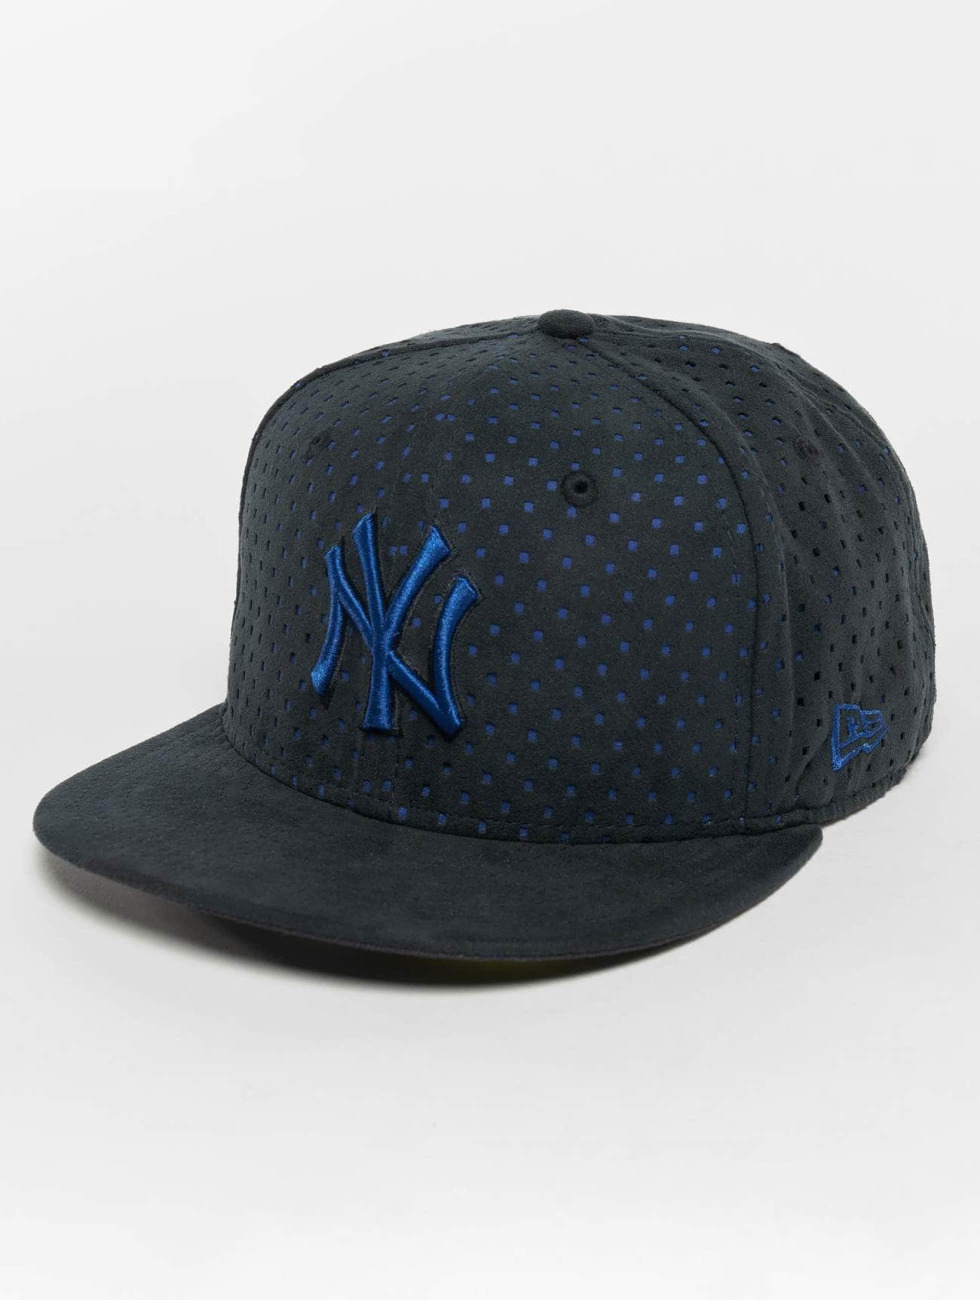 New Era Casquette Fitted Suede Perf NY Yankees 59Fifty bleu